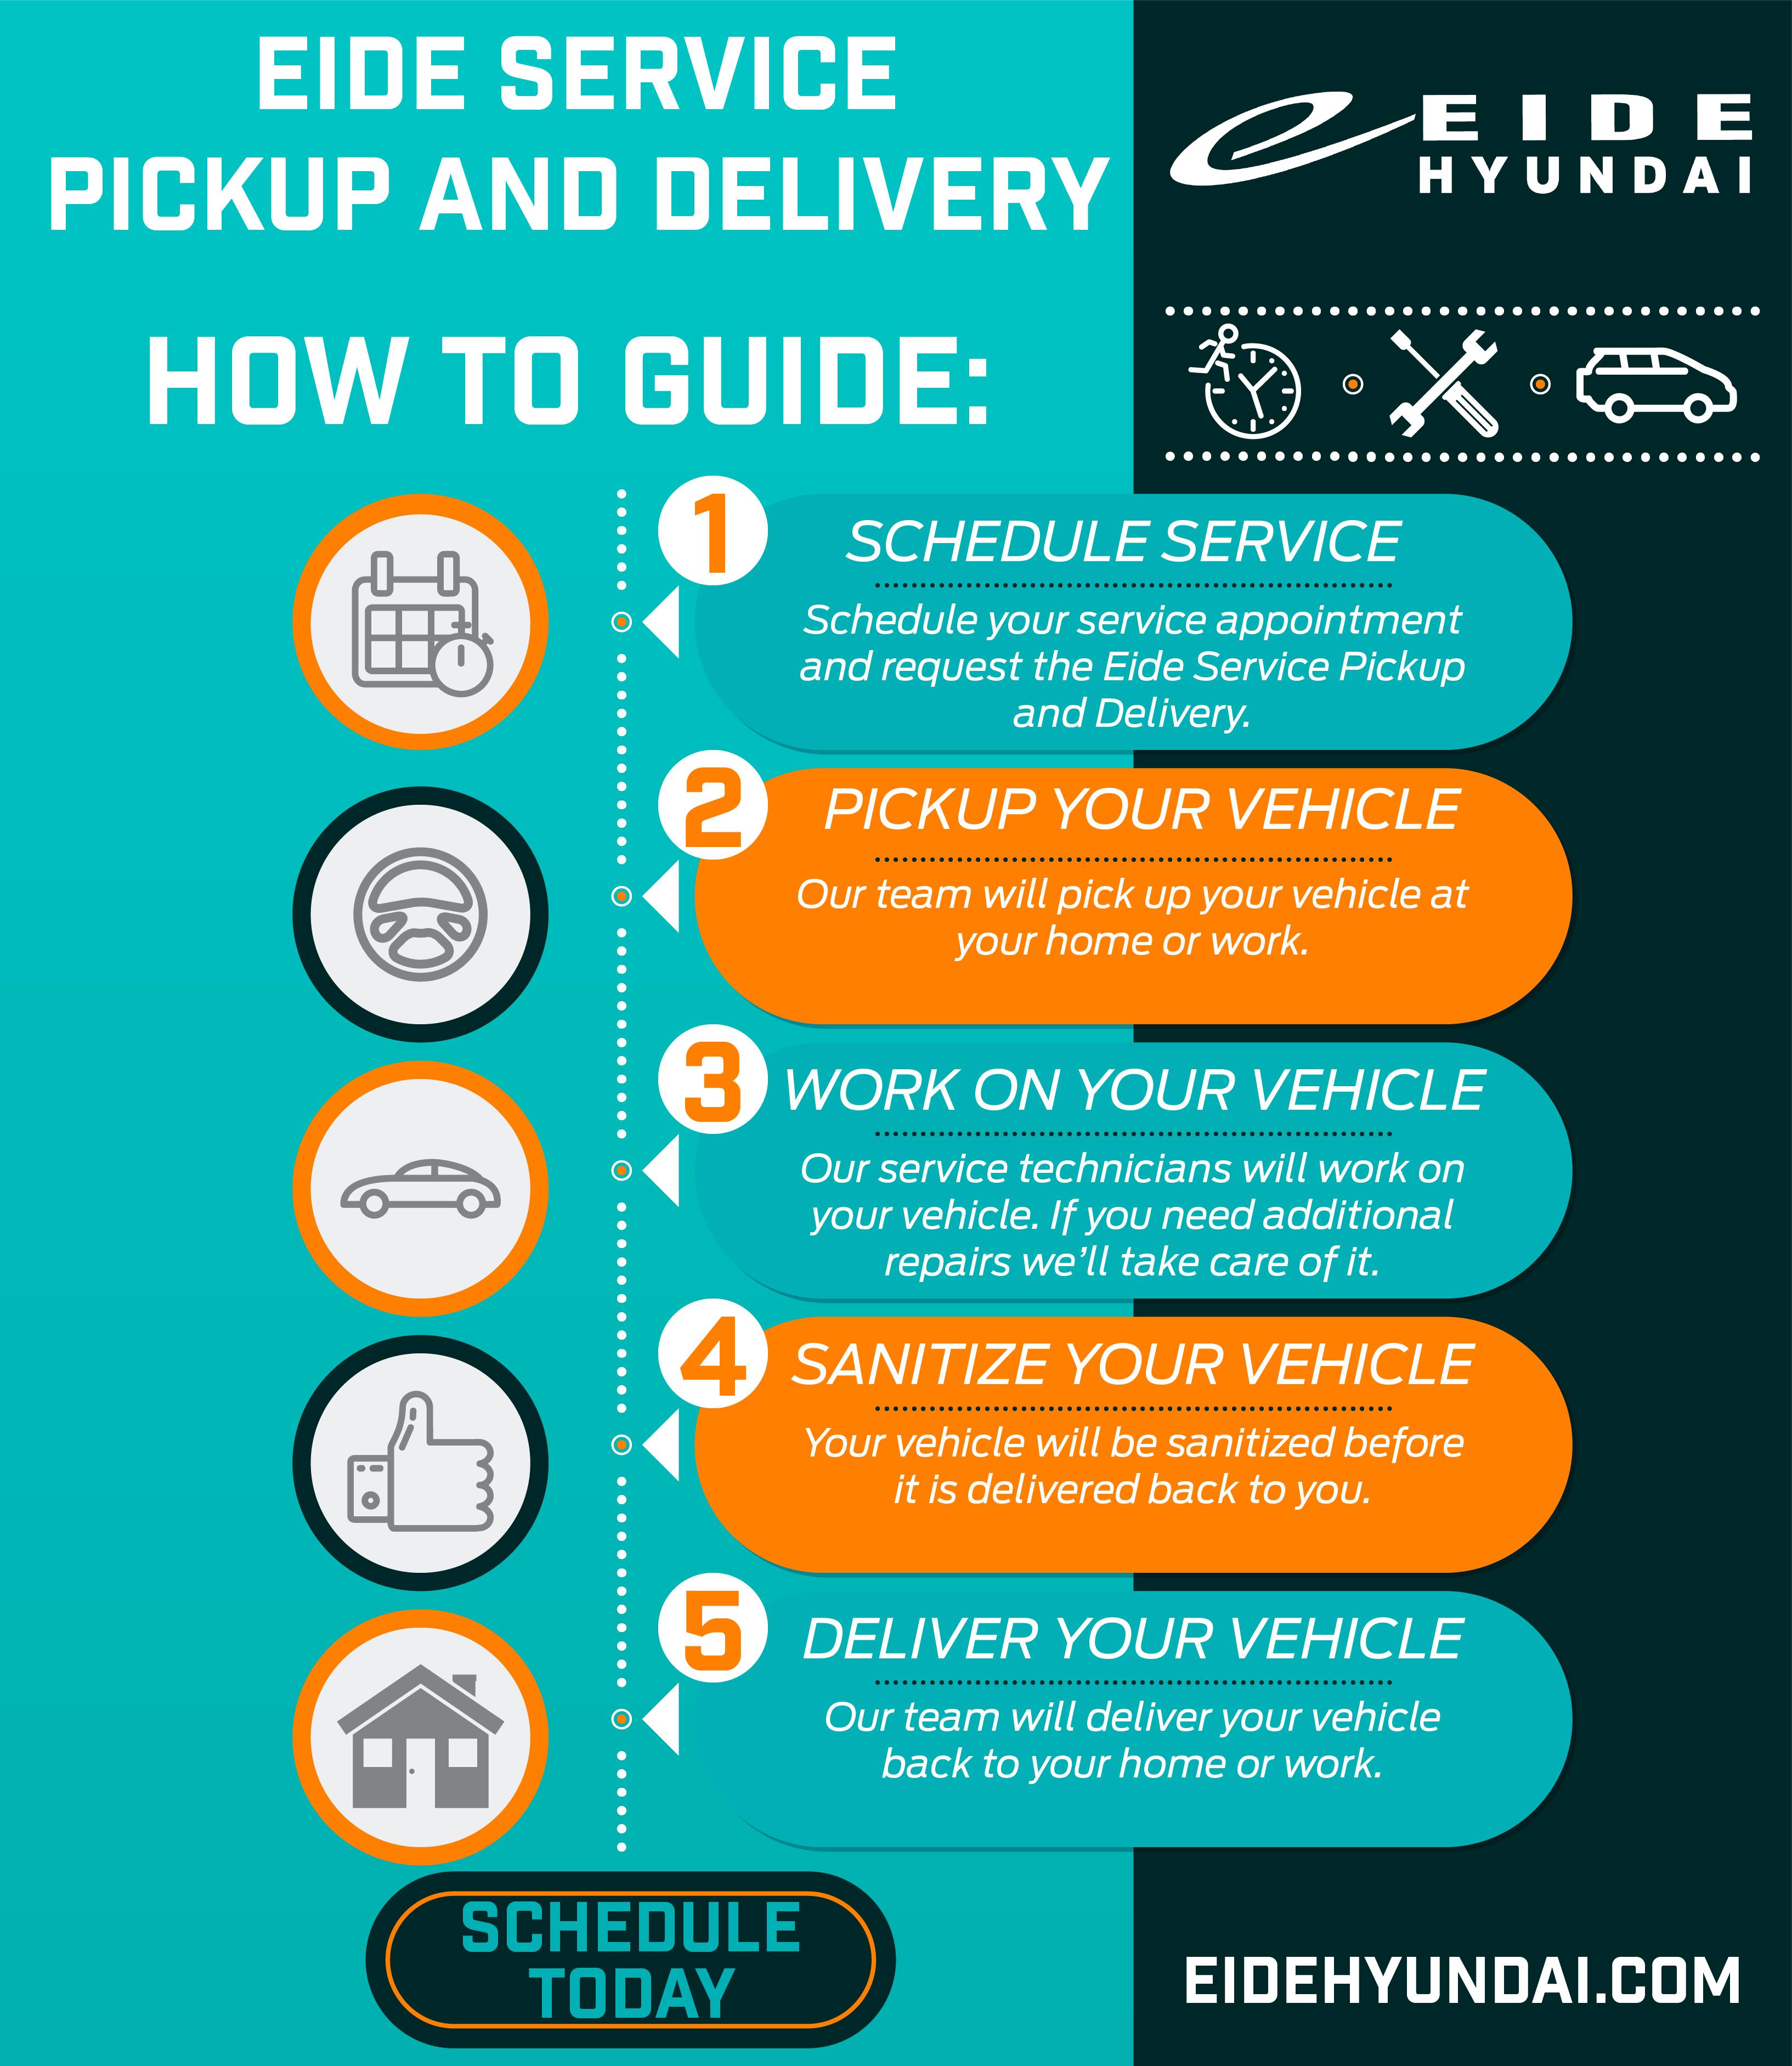 Eide Hyundai Service Pickup and Delivery